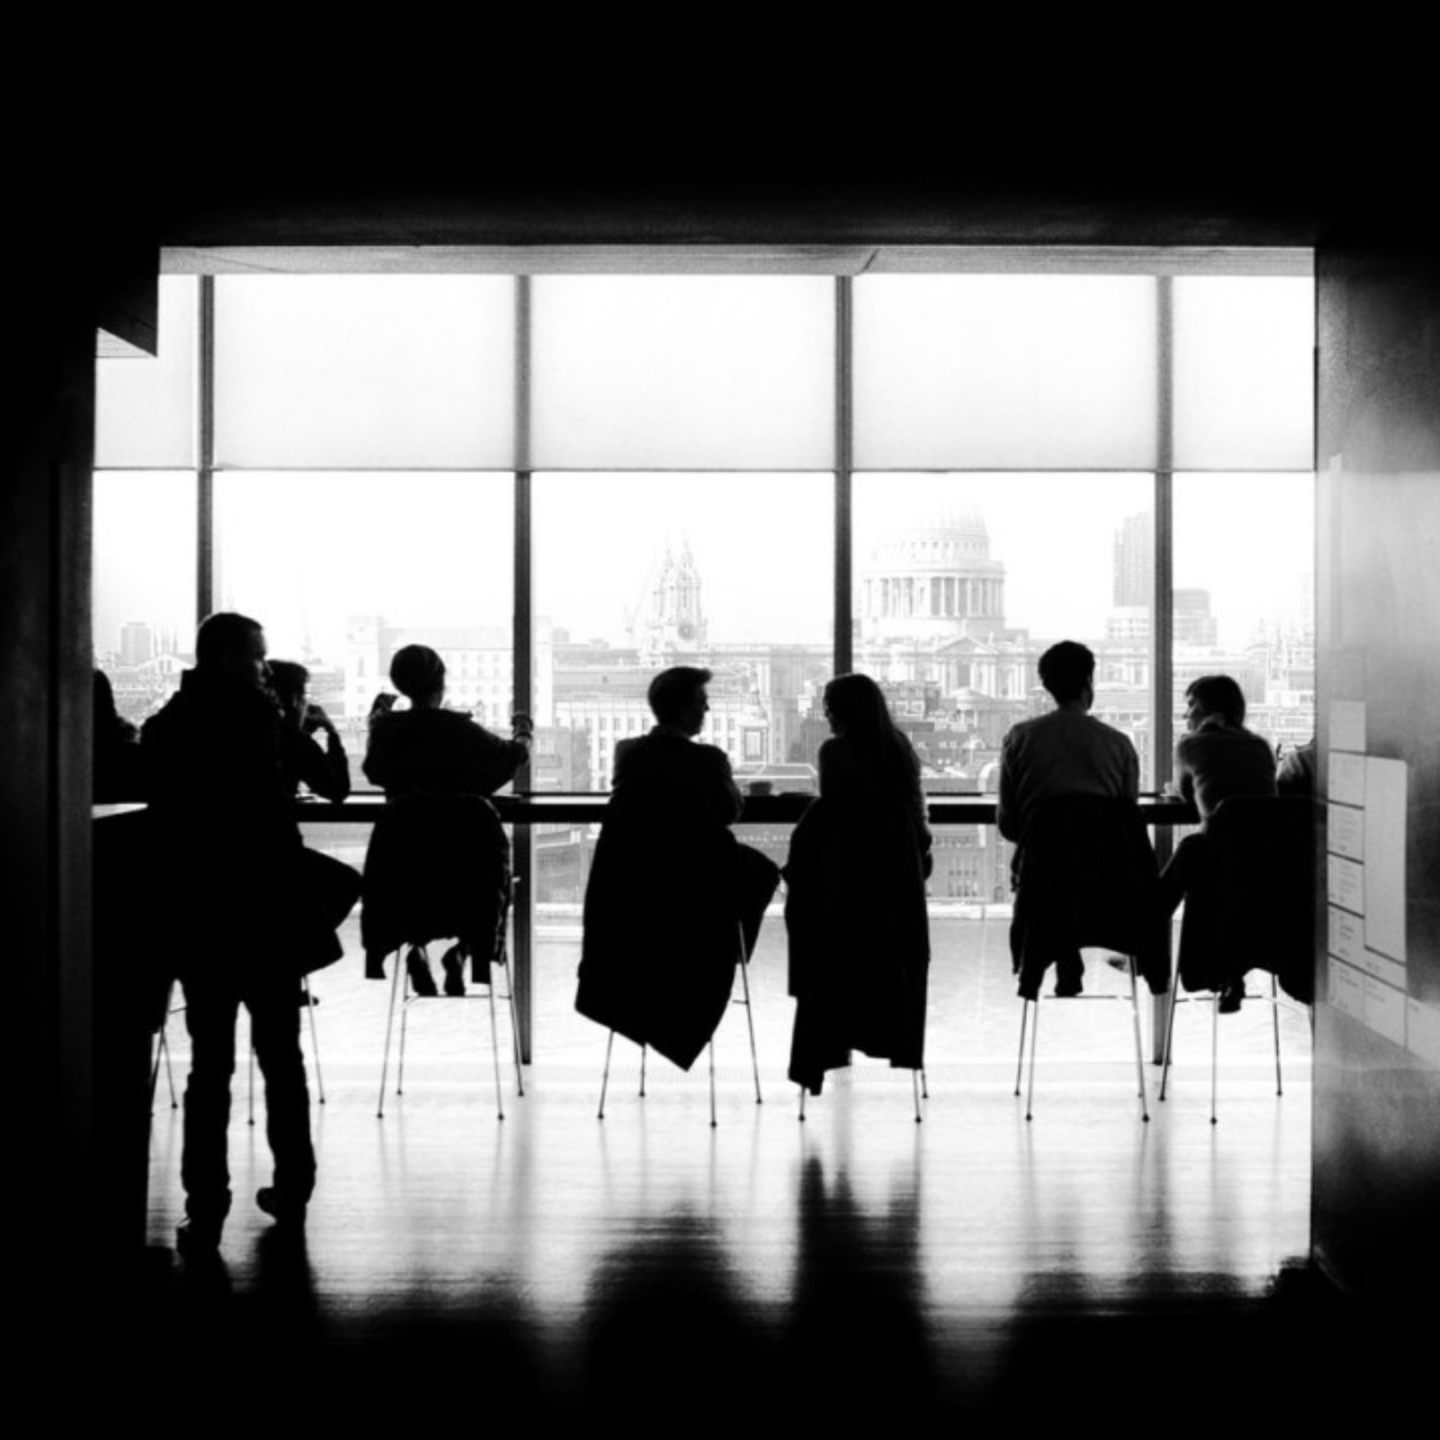 The Importance and Impact of Having Your Own Personal Board of Directors